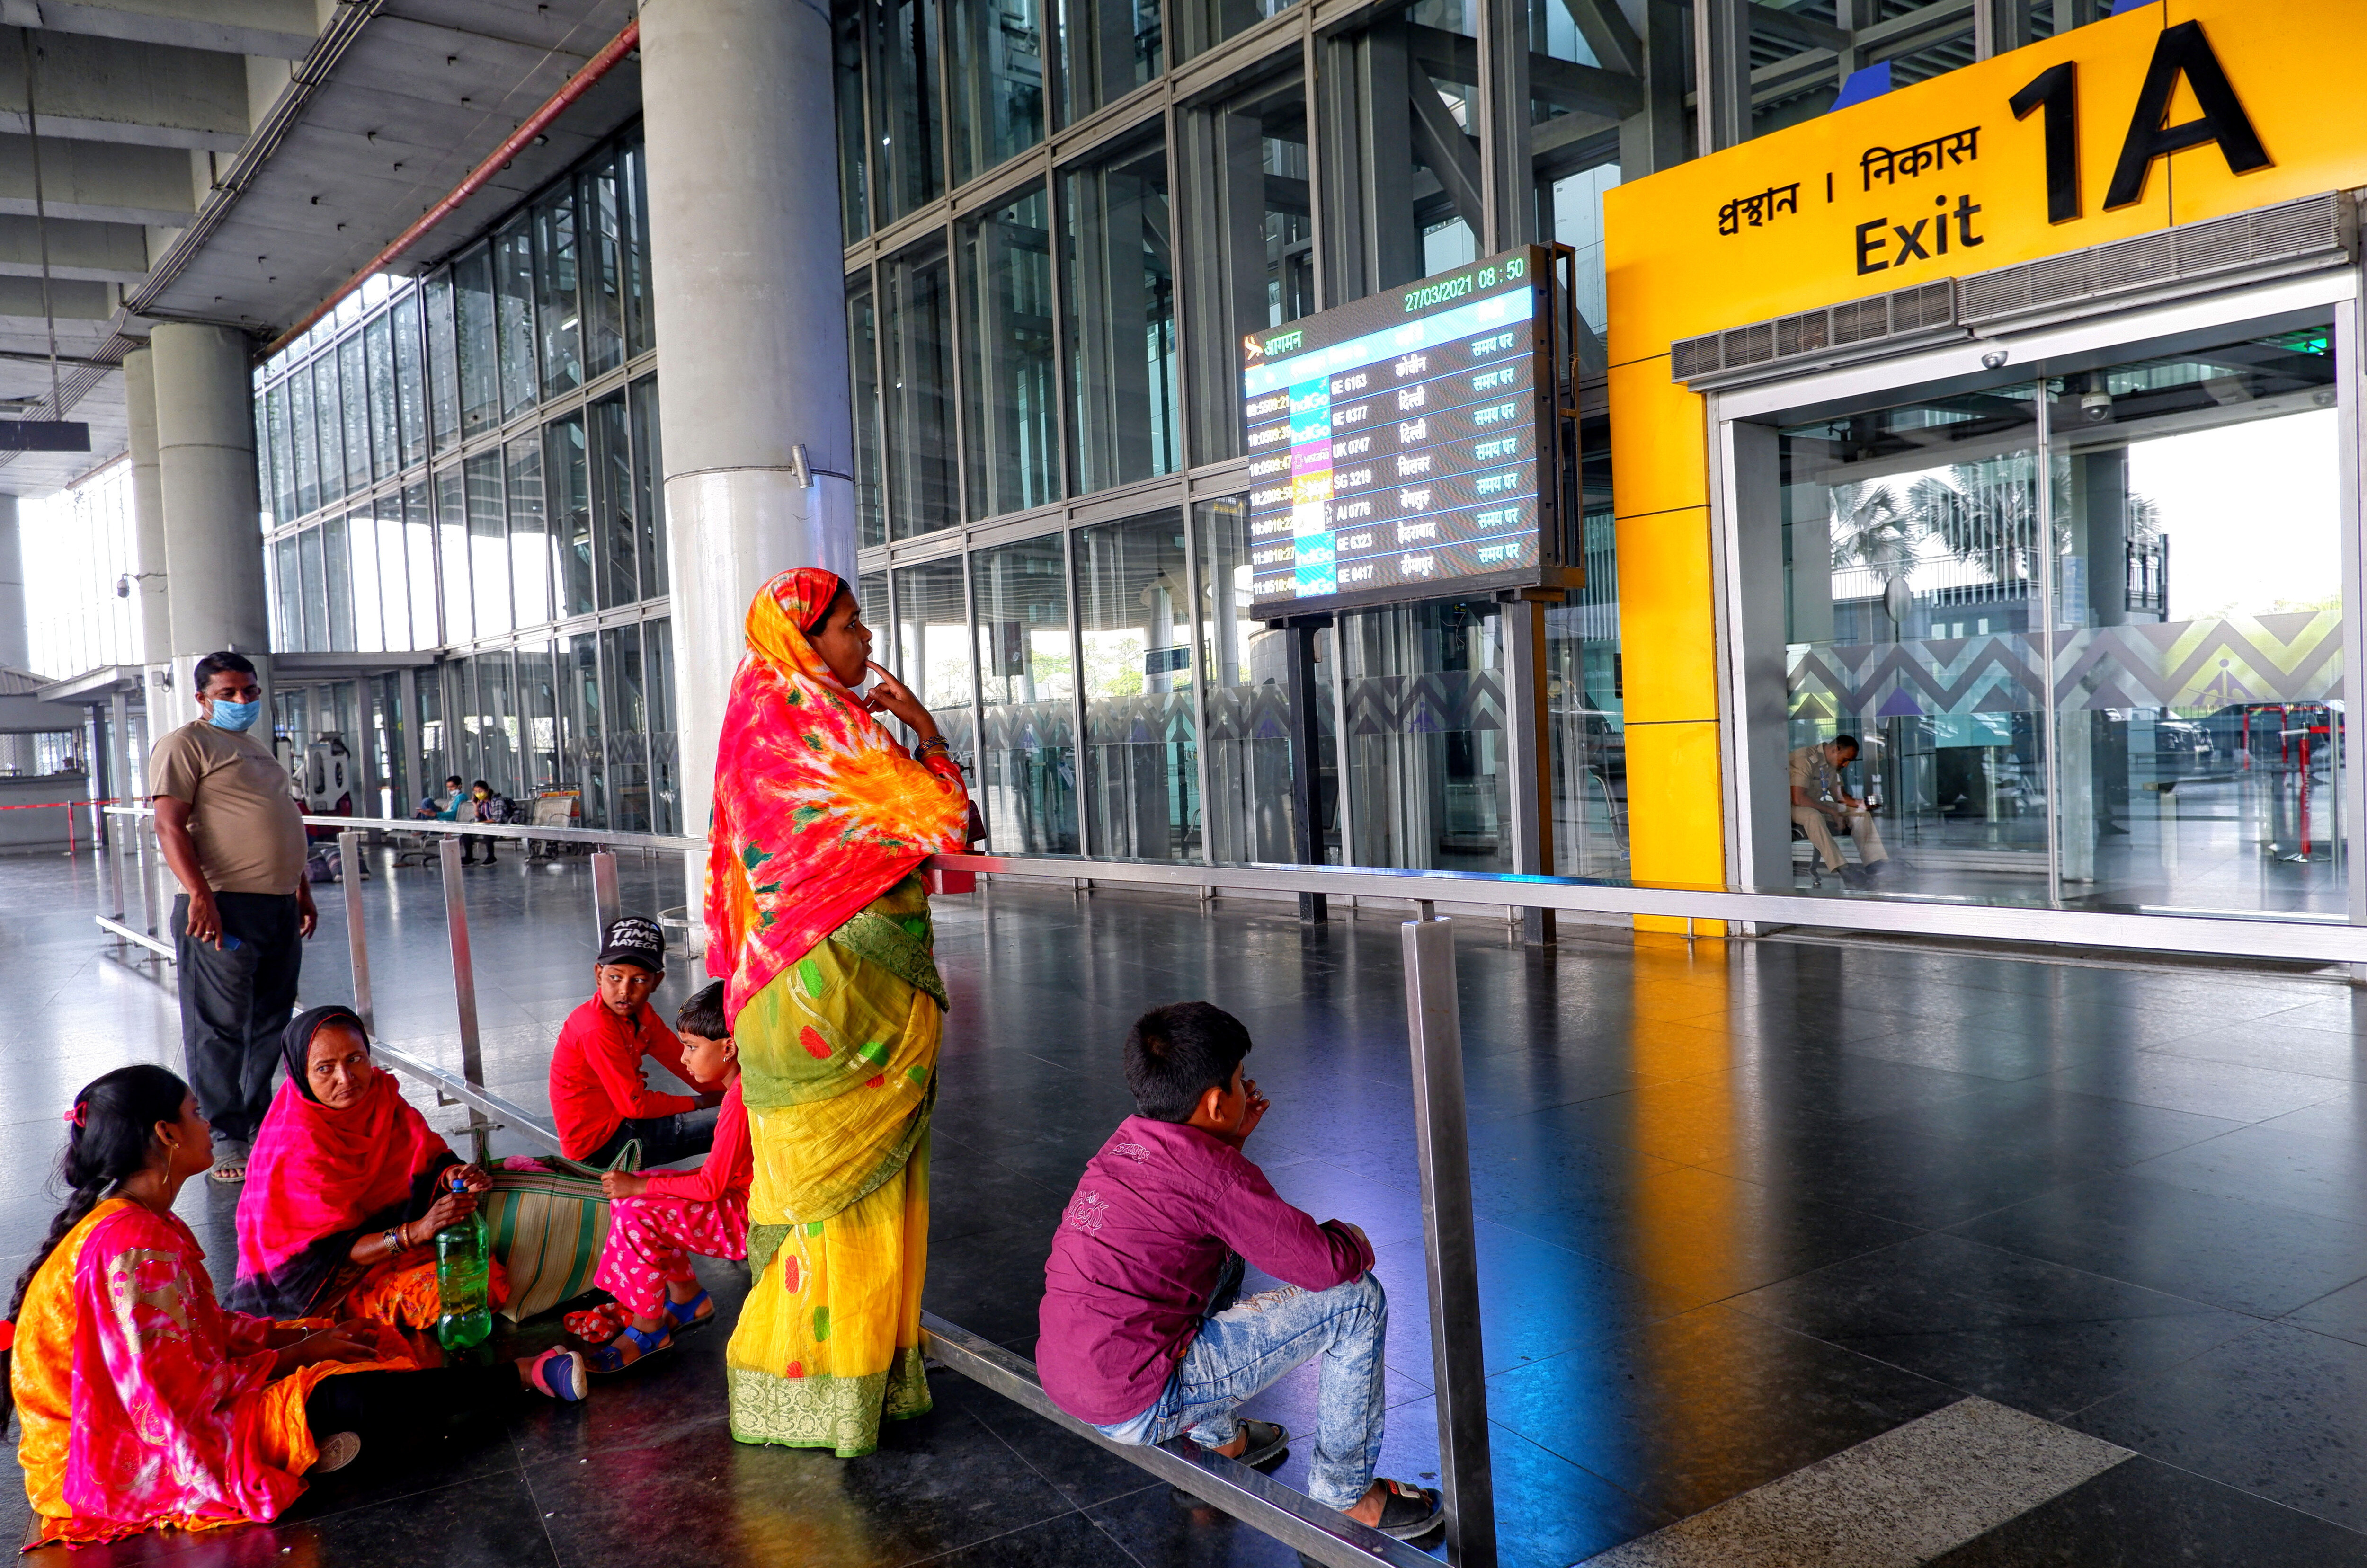 India Travel Bans Affect Workers Expats Families Aussie Cricket Players Goats And Soda Npr